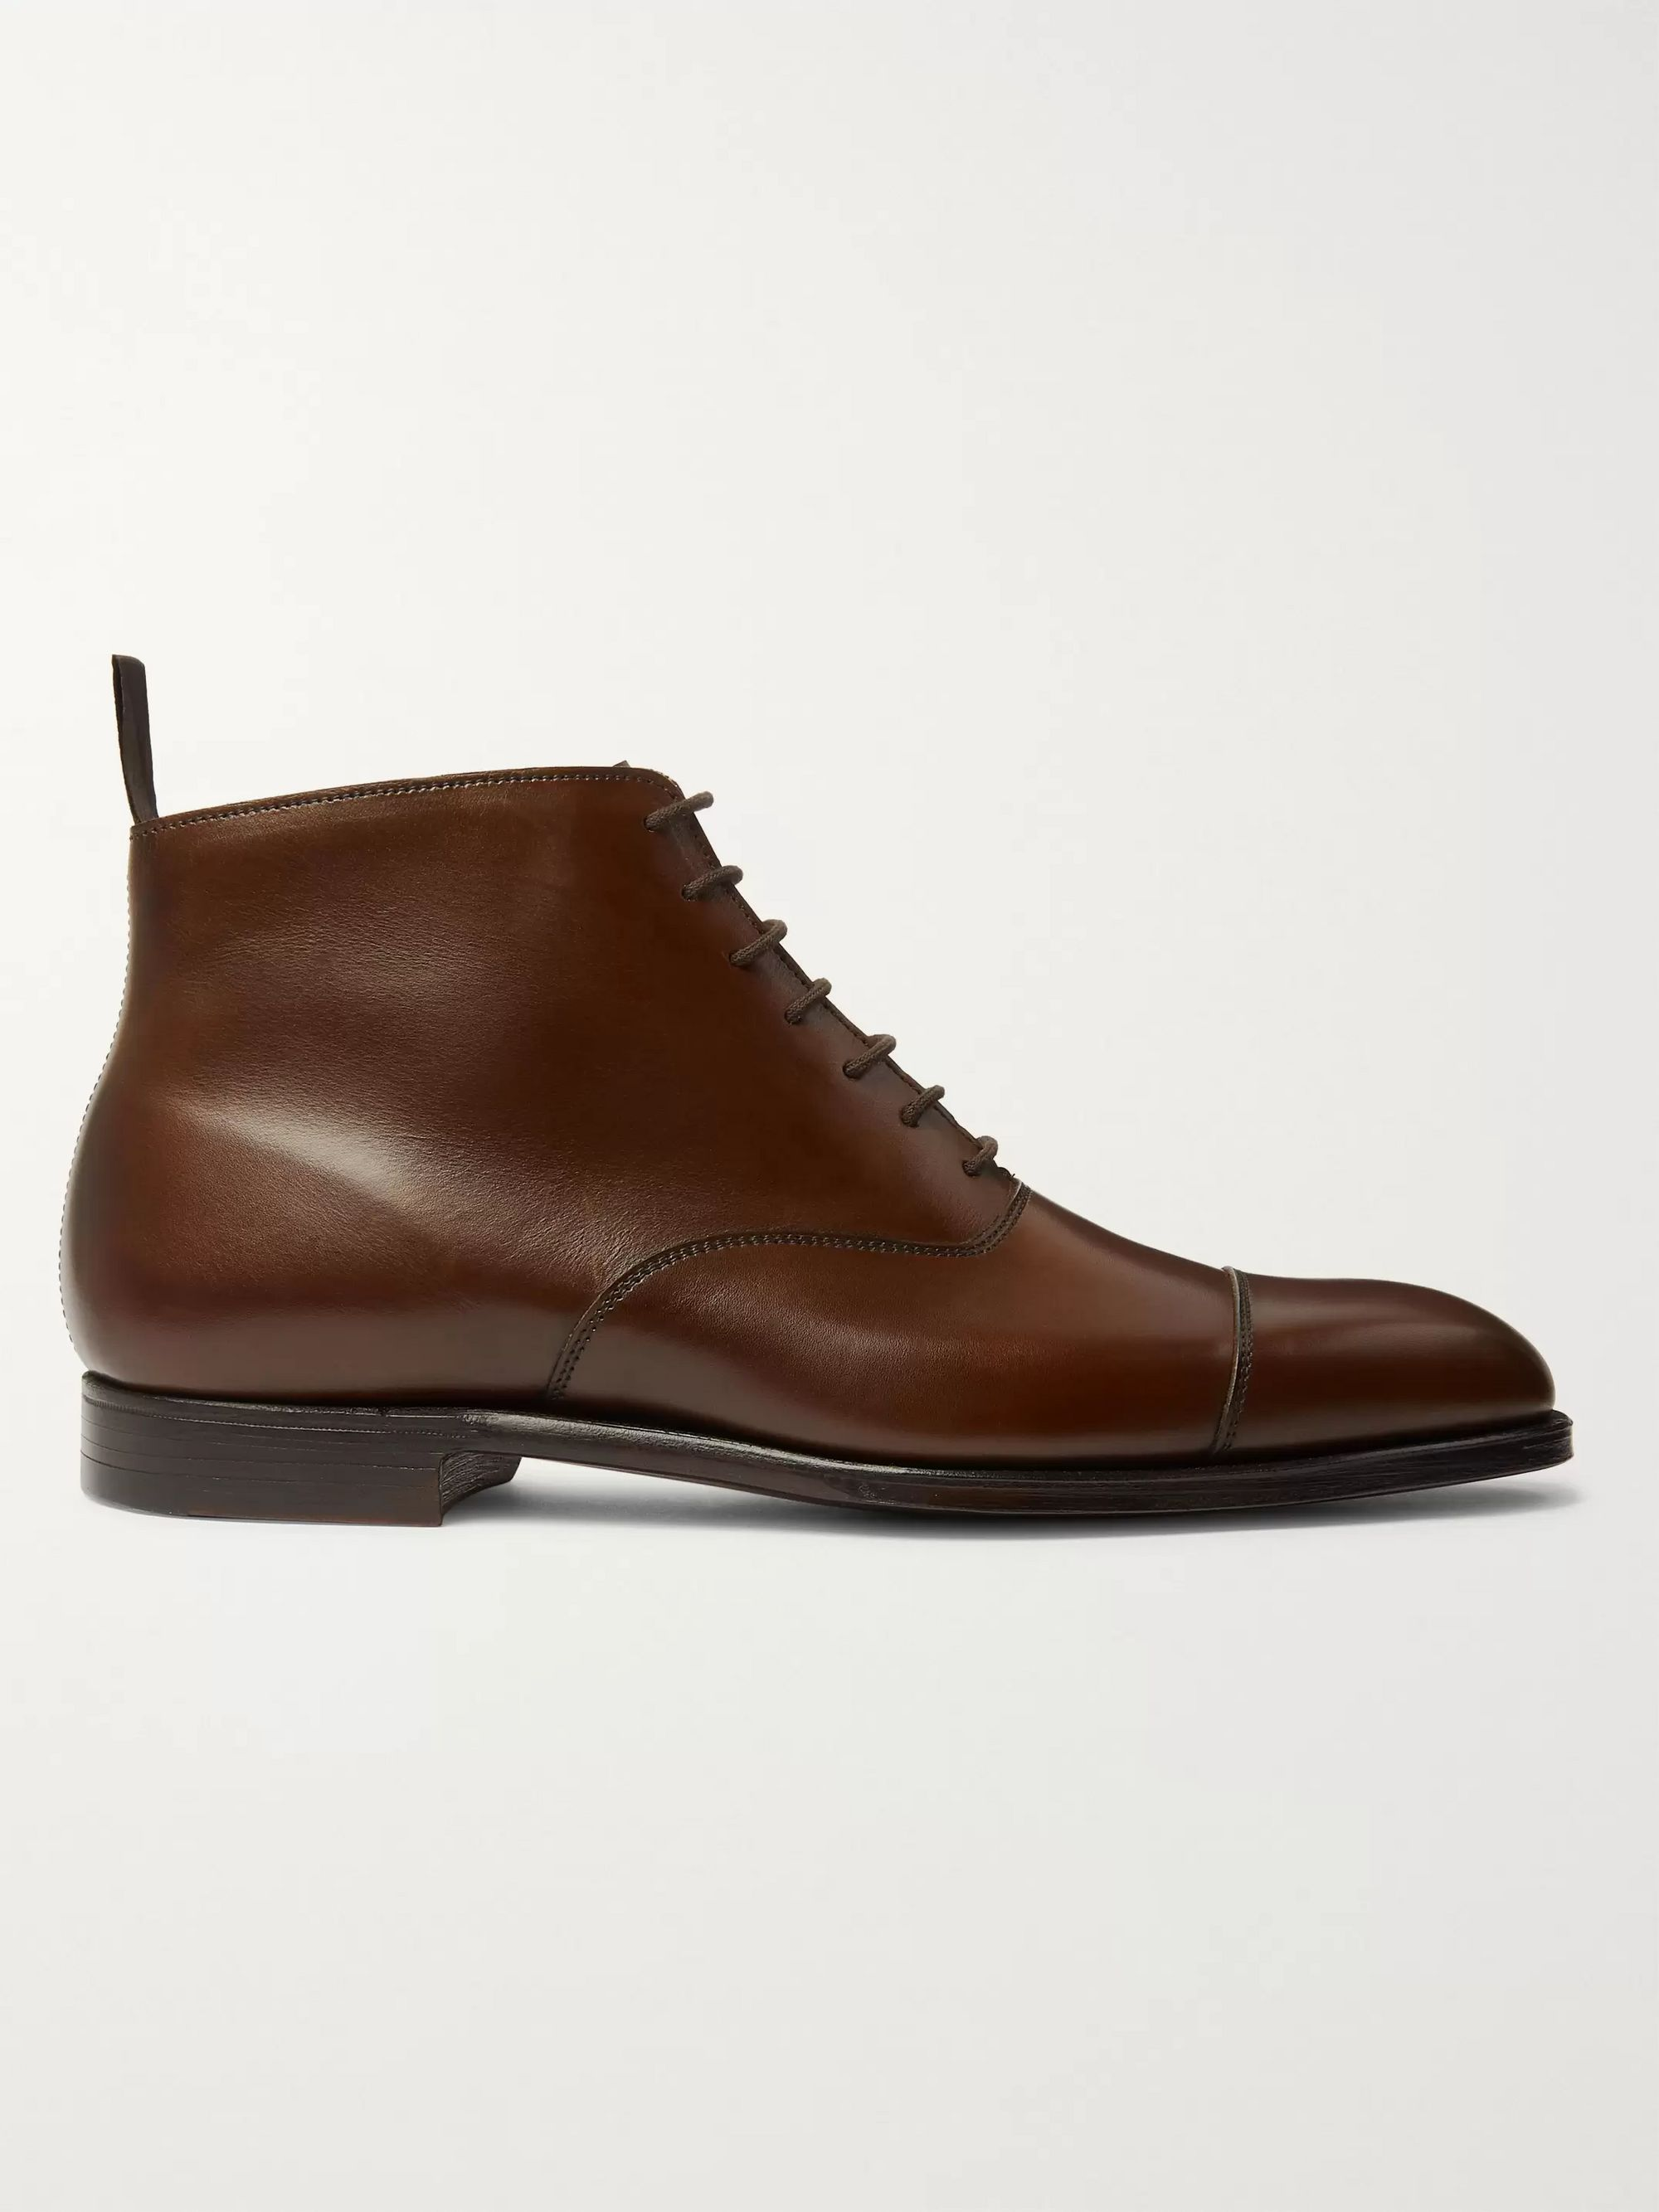 George Cleverley William Cap-Toe Cotswold Grain Leather Boots